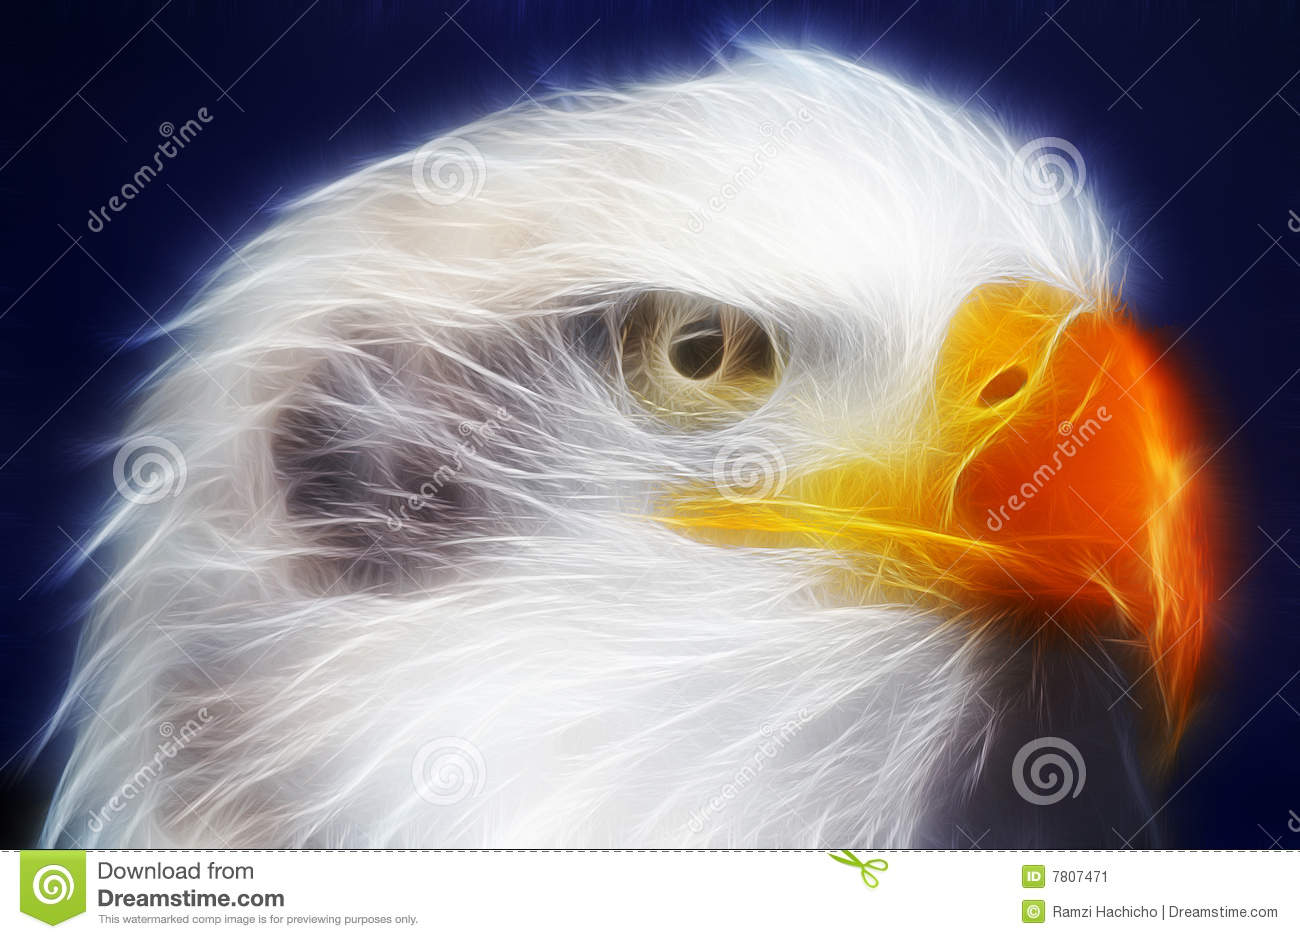 Bald Eagle Rendered With Electrical Light Rays Stock Image - Image ...